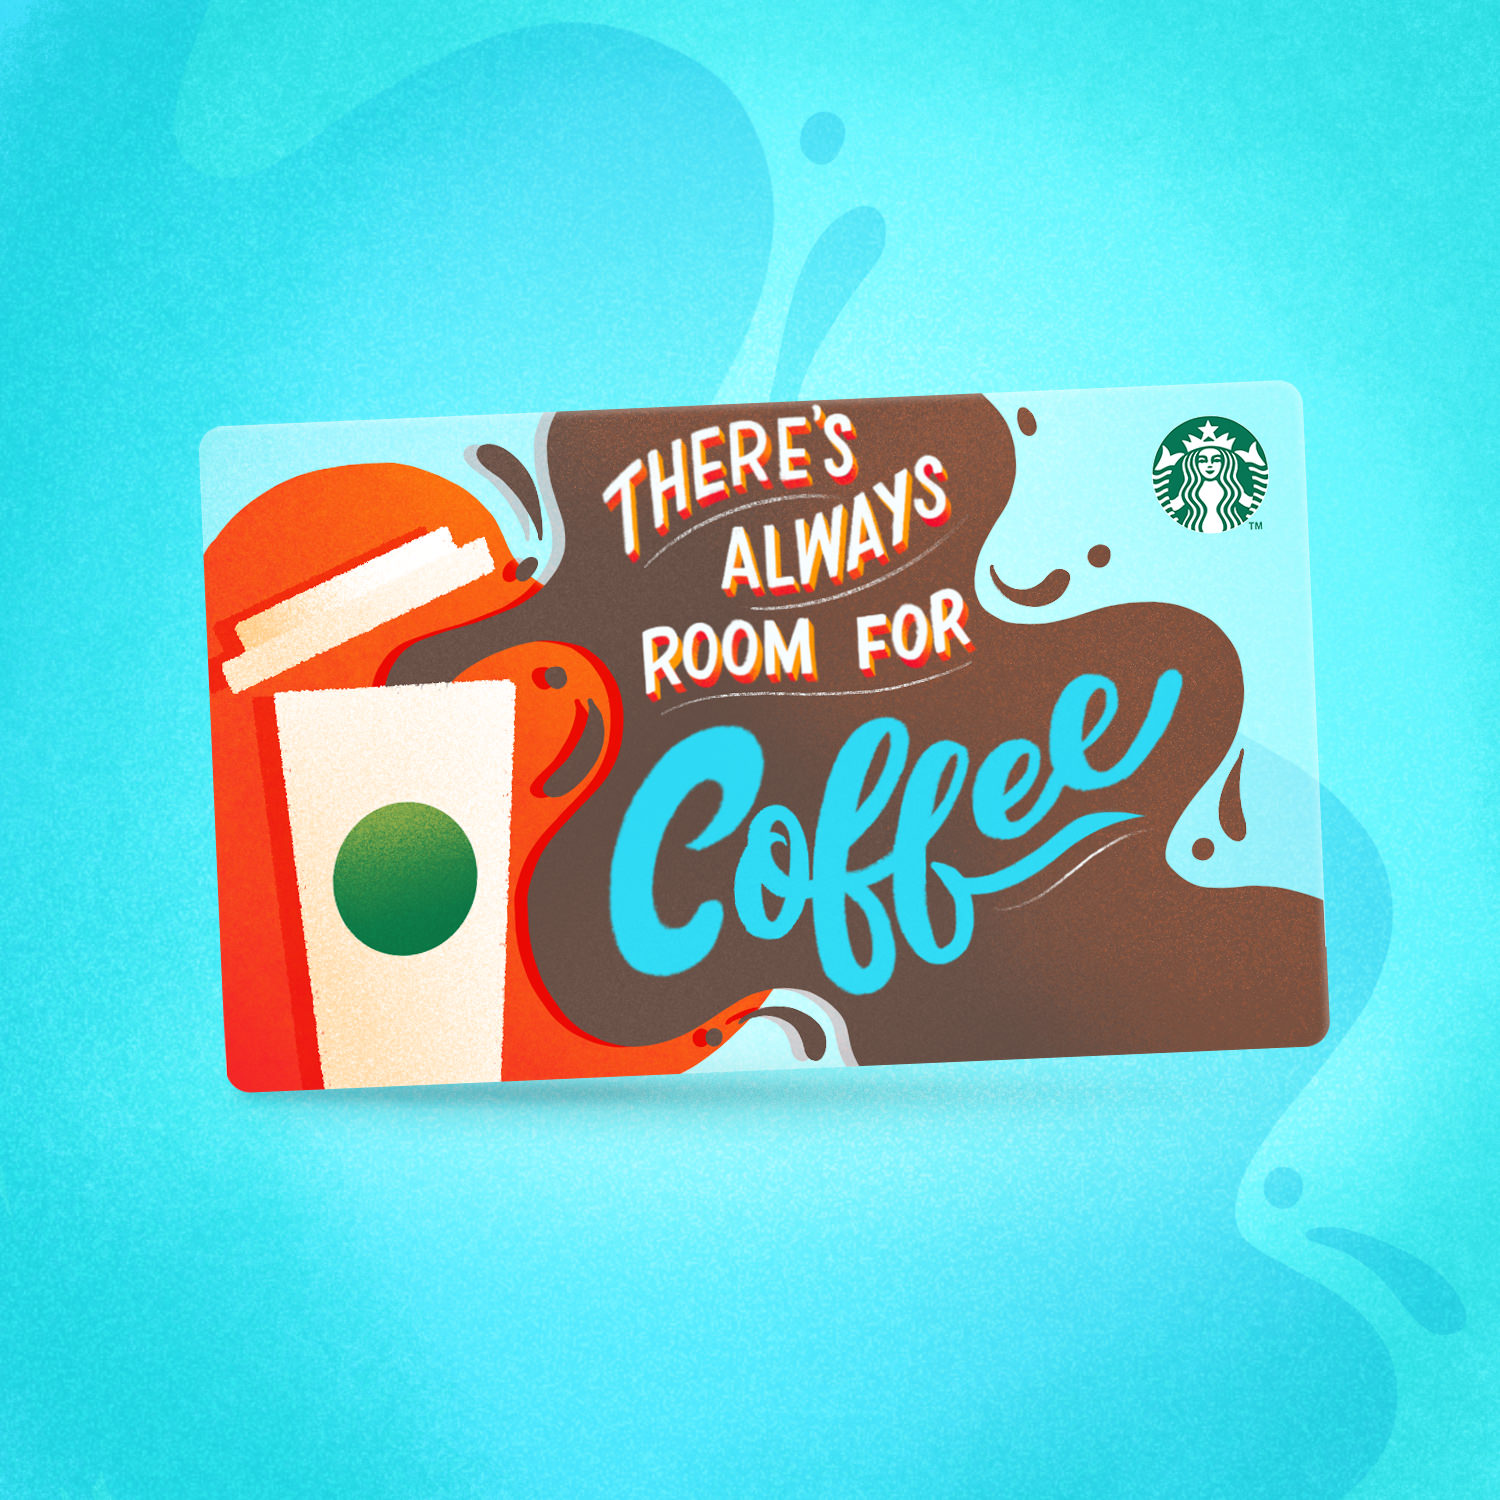 starbucks-gift-card-with-coffee-messaging-mockup